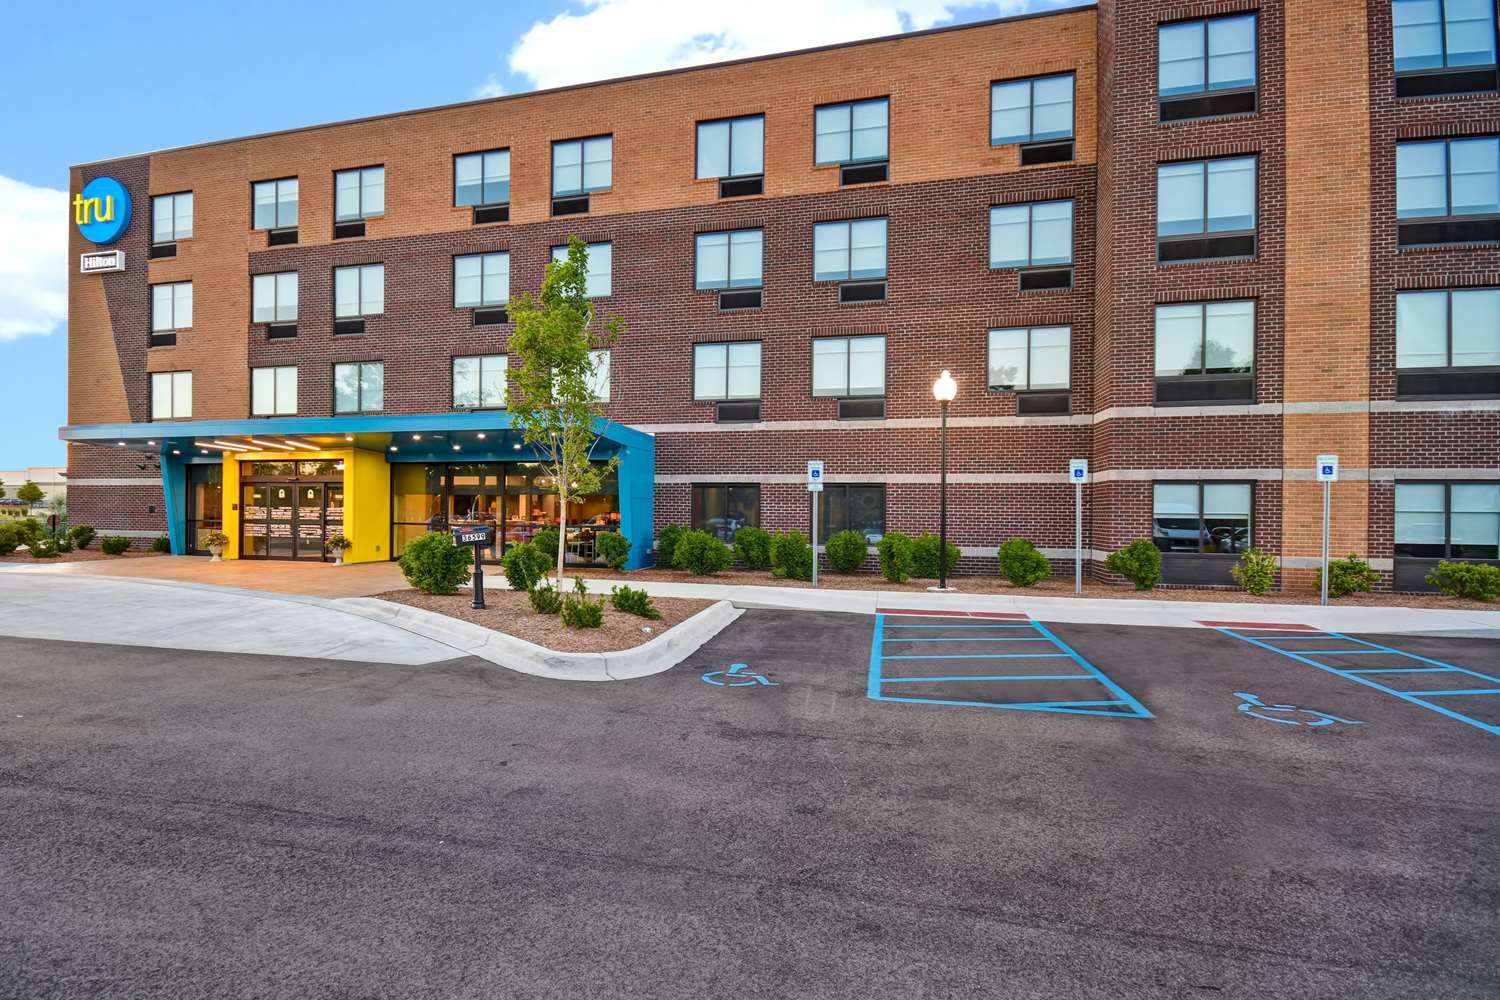 Exterior view - Tru by Hilton Hotel Sterling Heights